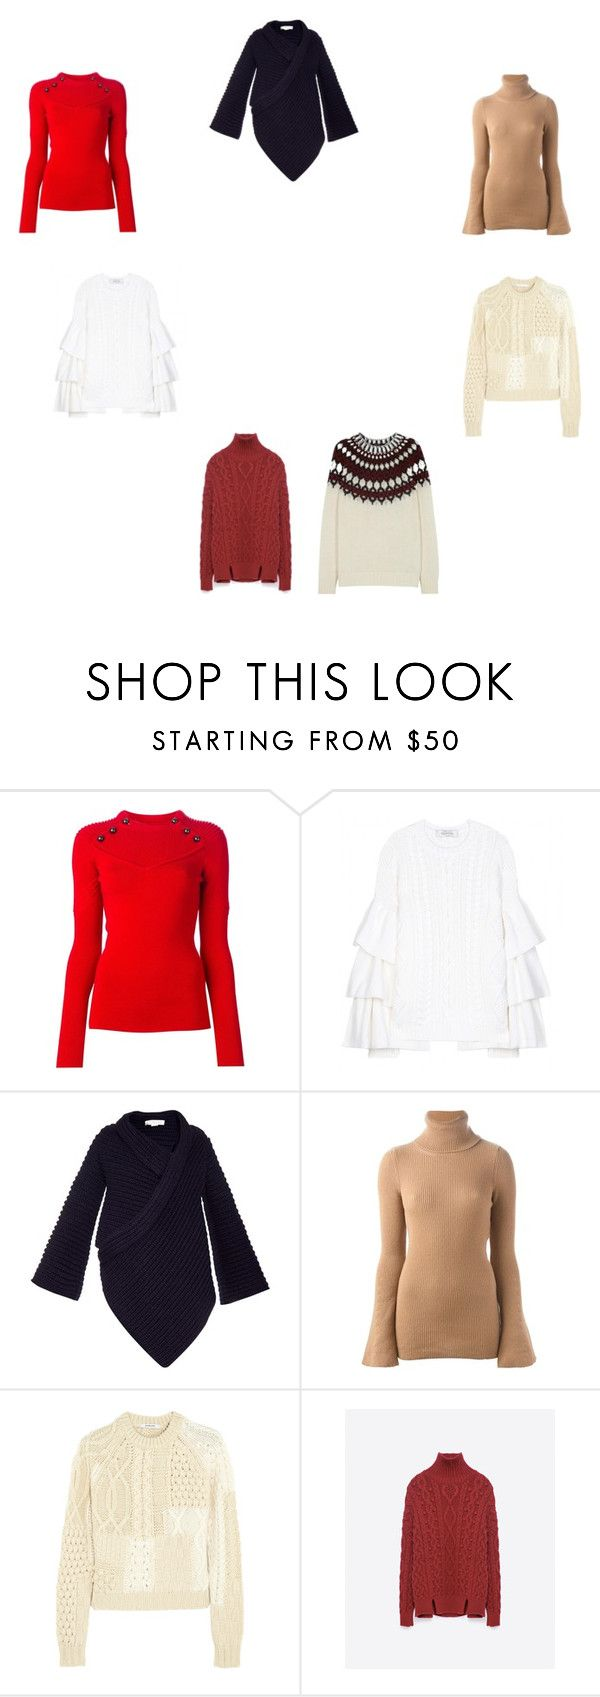 """""""knit"""" by pollianidotcom on Polyvore featuring Isabel Marant, Valentino, STELLA McCARTNEY, Carven, Zara and Gucci"""